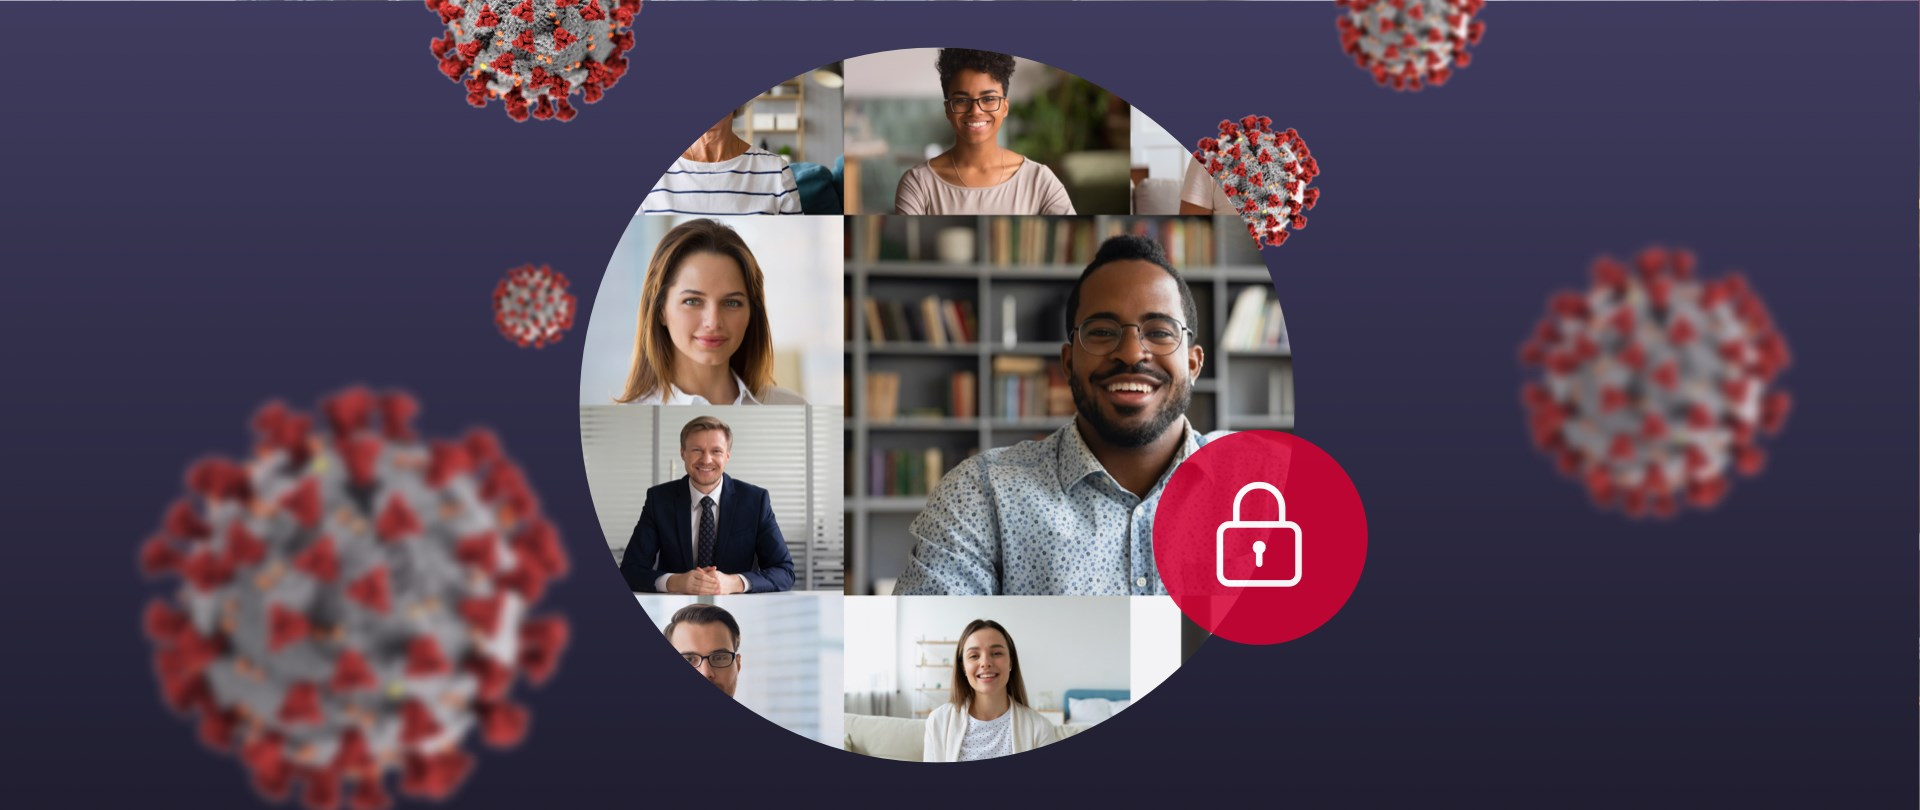 Protecting stakeholder information during COVID-19